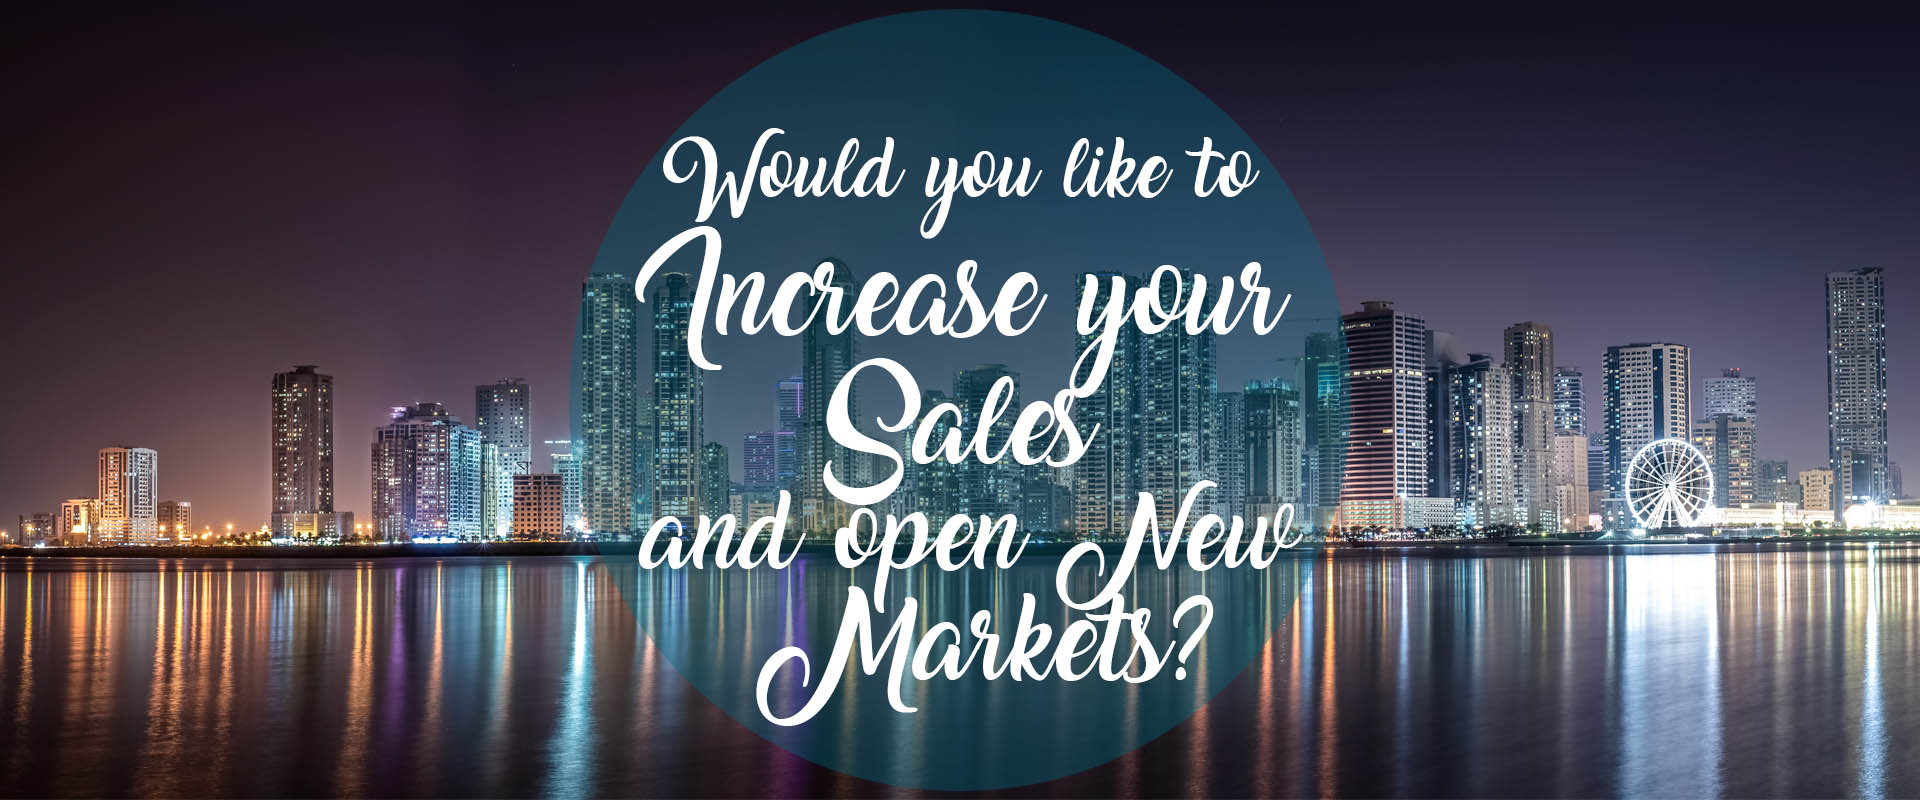 Would you like to increase your sales and open new markets